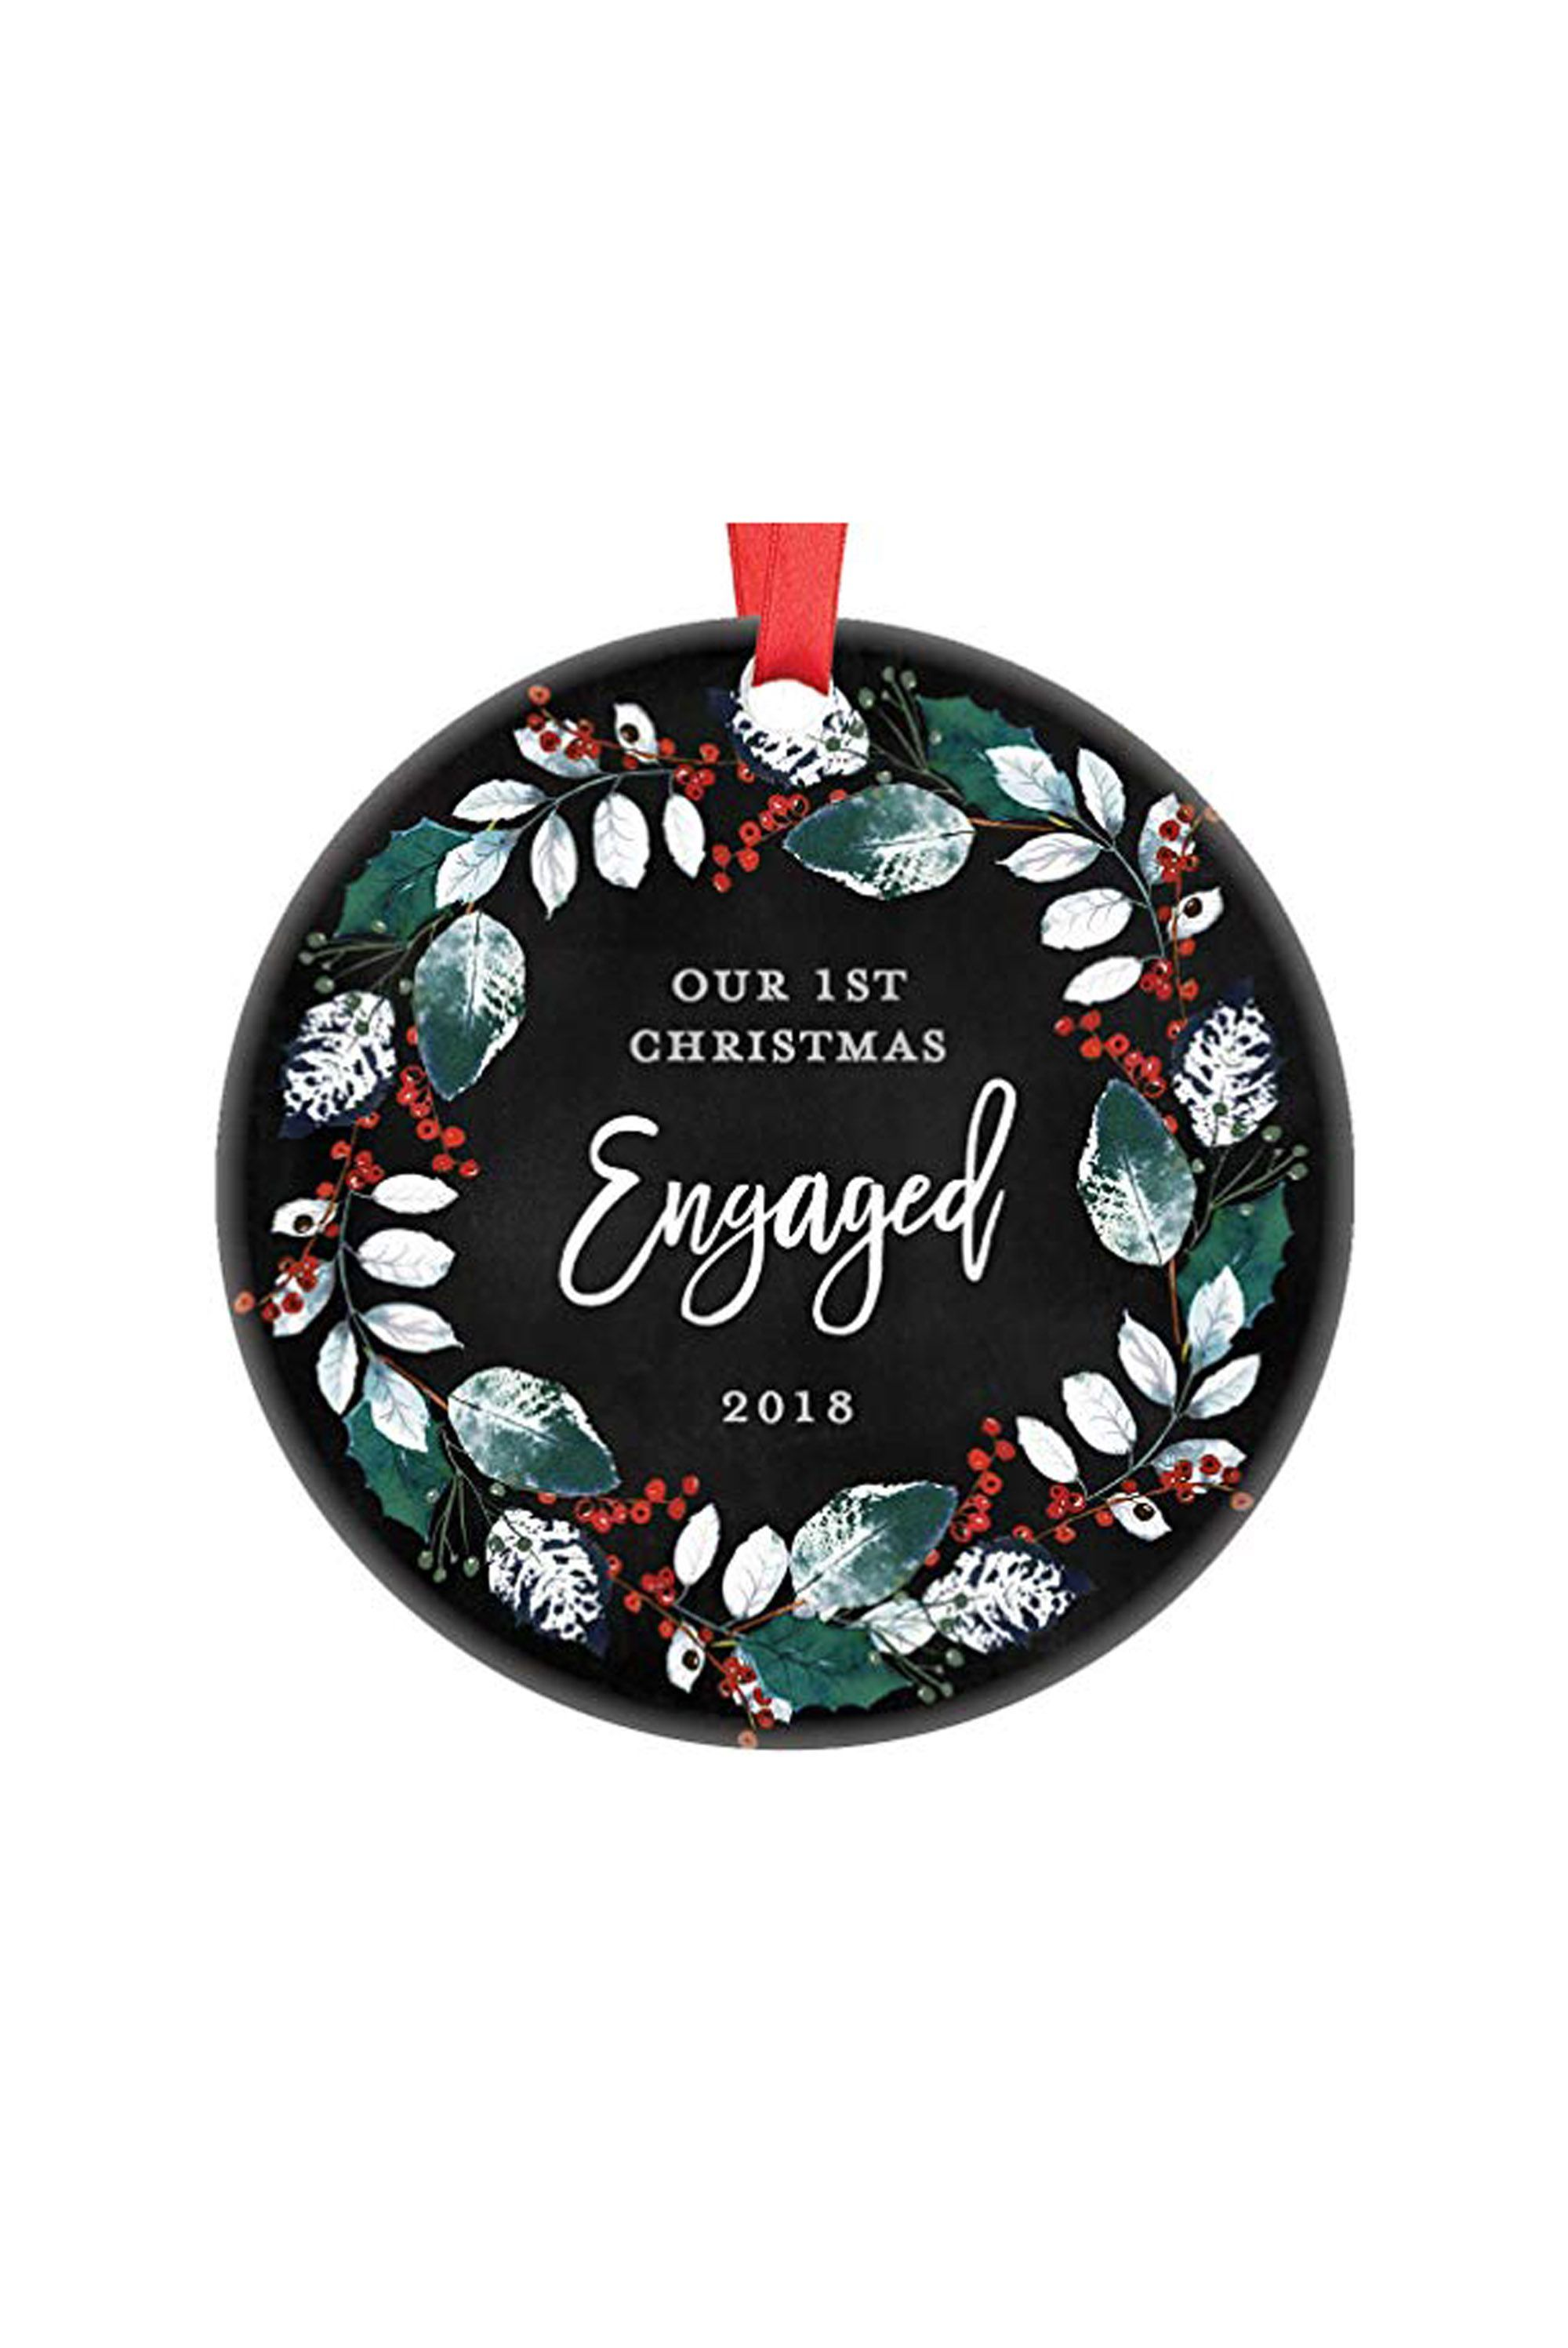 20 engagement ornaments personalized ornaments for first engaged christmas - Christmas Photo Ornaments